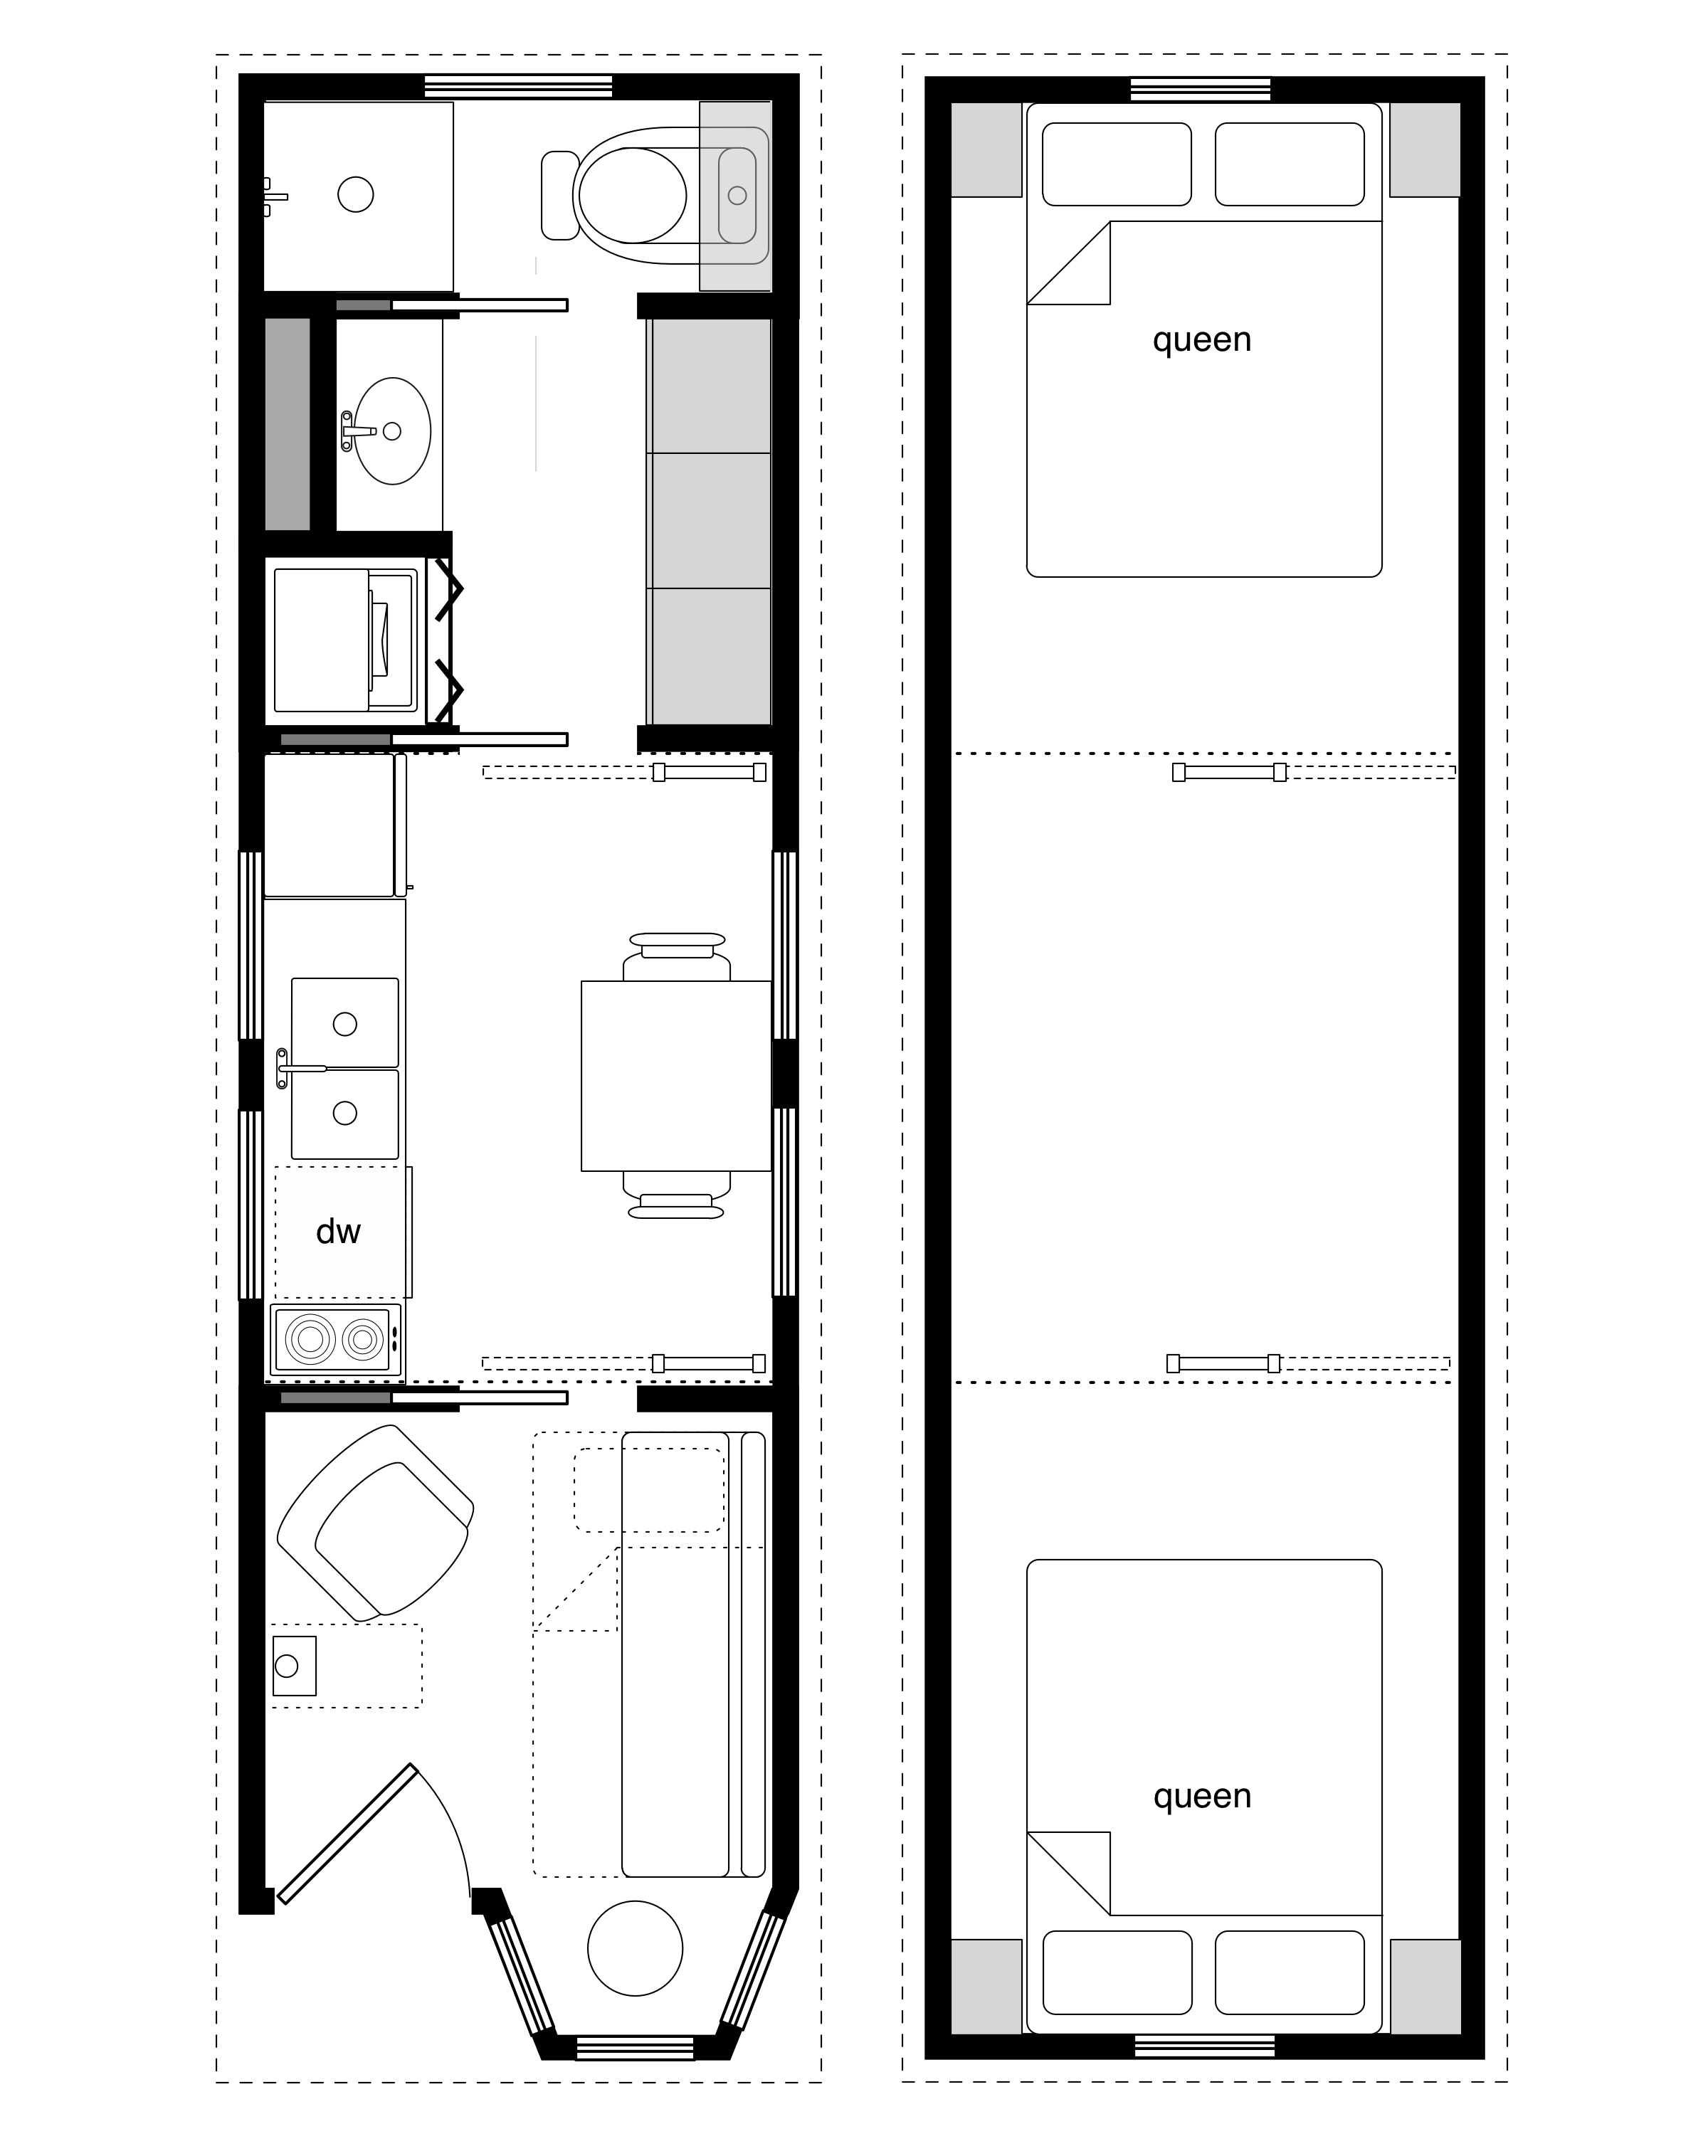 Tiny House On Wheels Two Lofts 8x28 coastal cottage 7 back 1/3 of plan and two lofts work. front